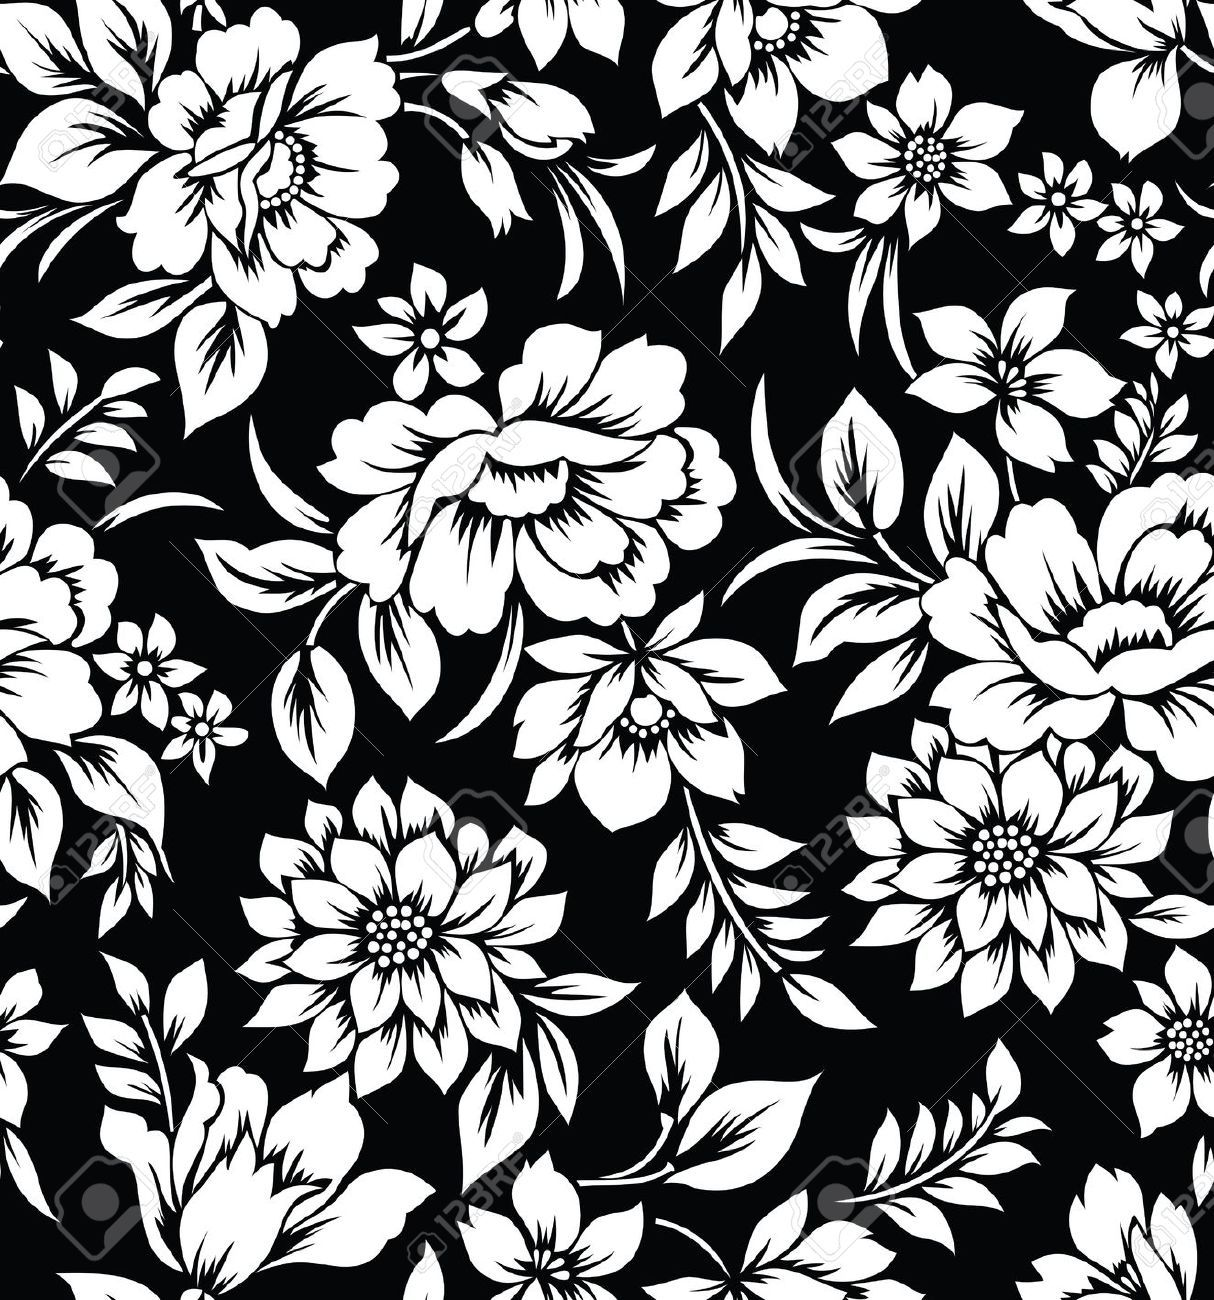 20299024 Decorative Seamless Floral Wallpaper Pattern Jpg 1214